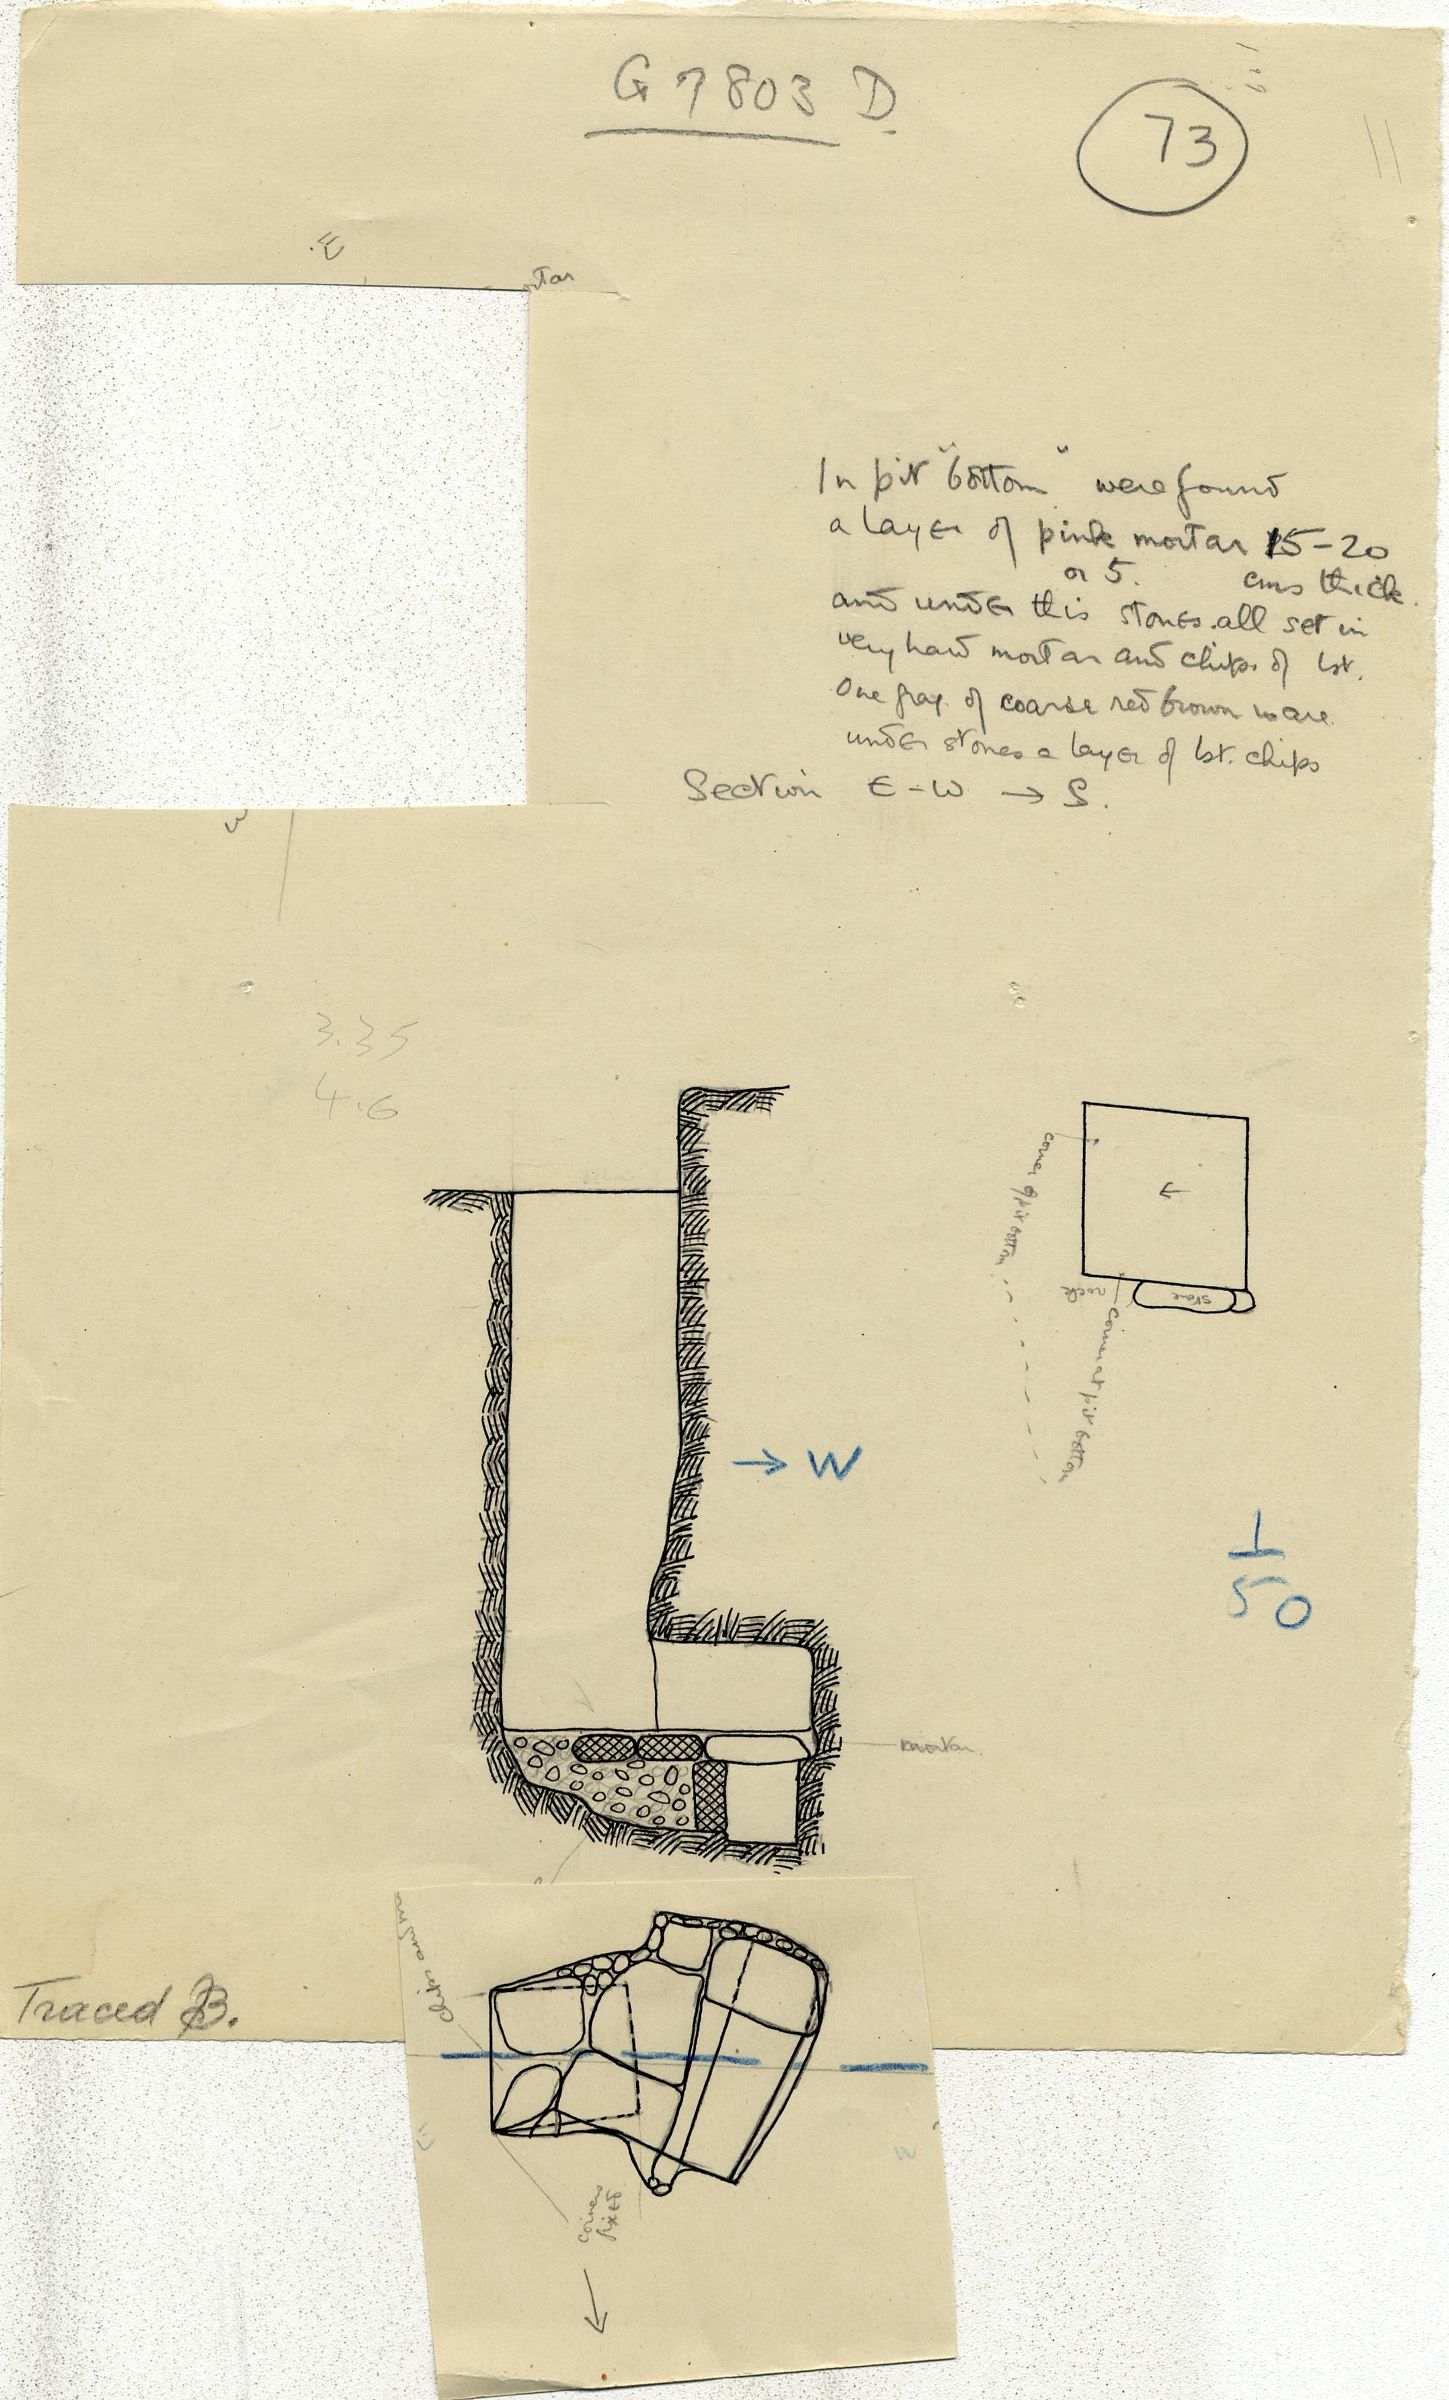 Maps and plans: G 7802, Shaft D